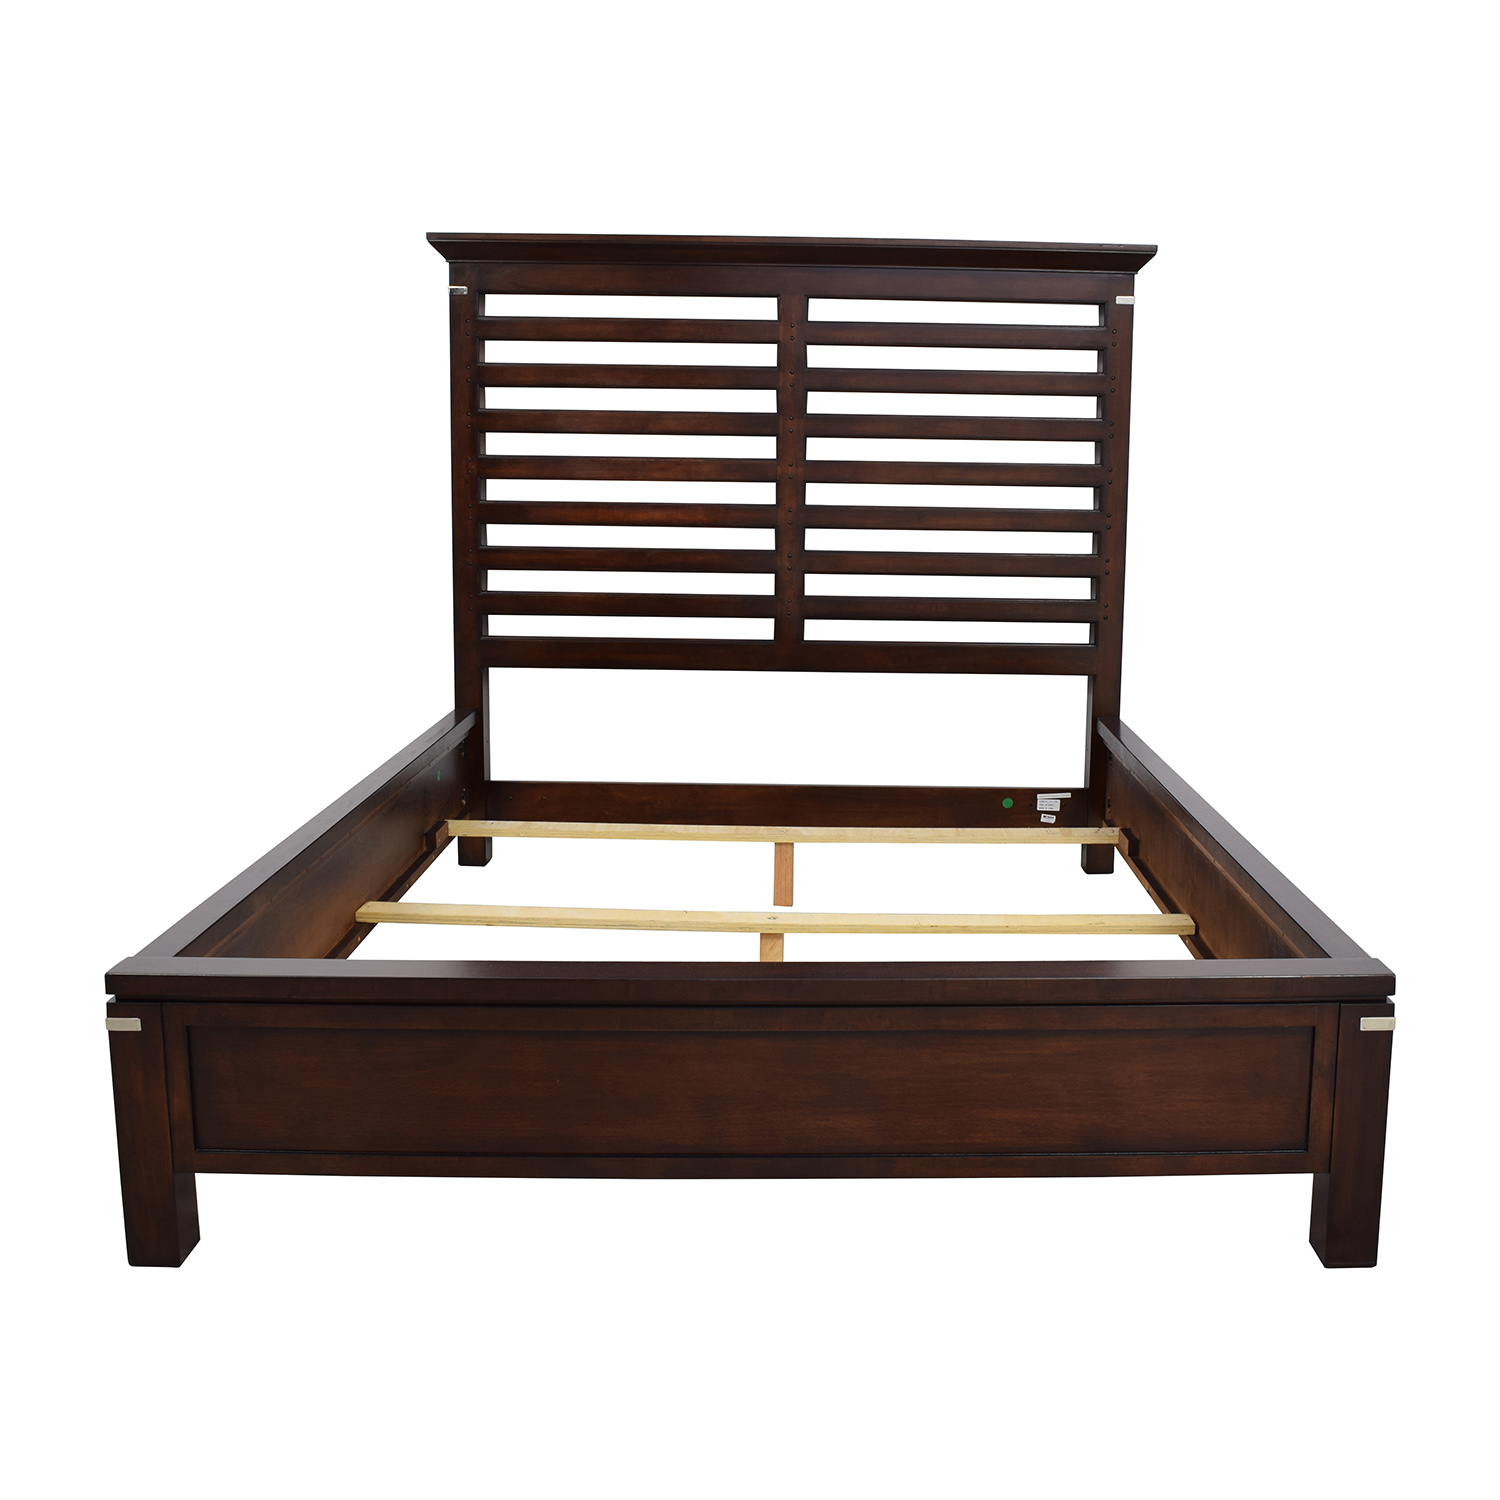 75% OFF - Tea Trade Tea Trade Dark Wood Caged Queen Bed Frame / Beds